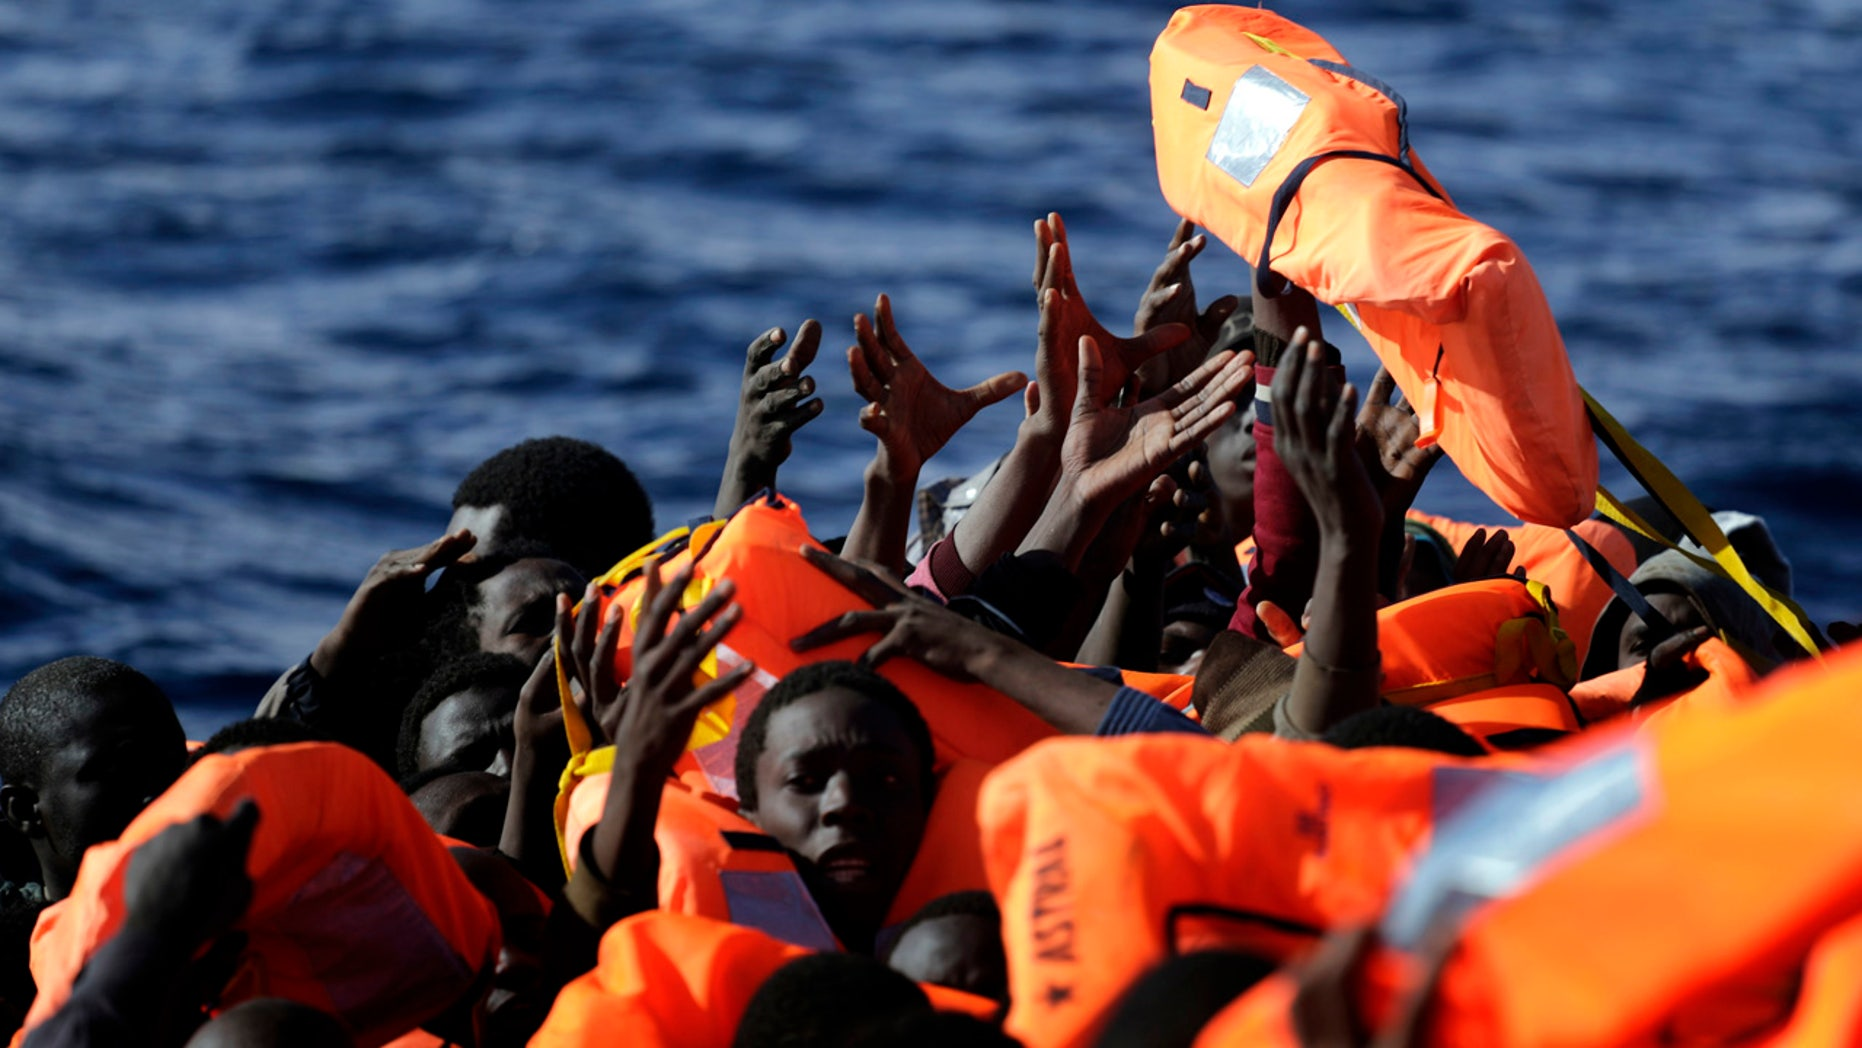 Jan. 27, 2017: Sub-Saharan migrants raise their hands to grab a life jacket as they are rescued by members of the Proactive Open Arms NGO, in the Mediterranean Sea north of Zumarah, Libya.